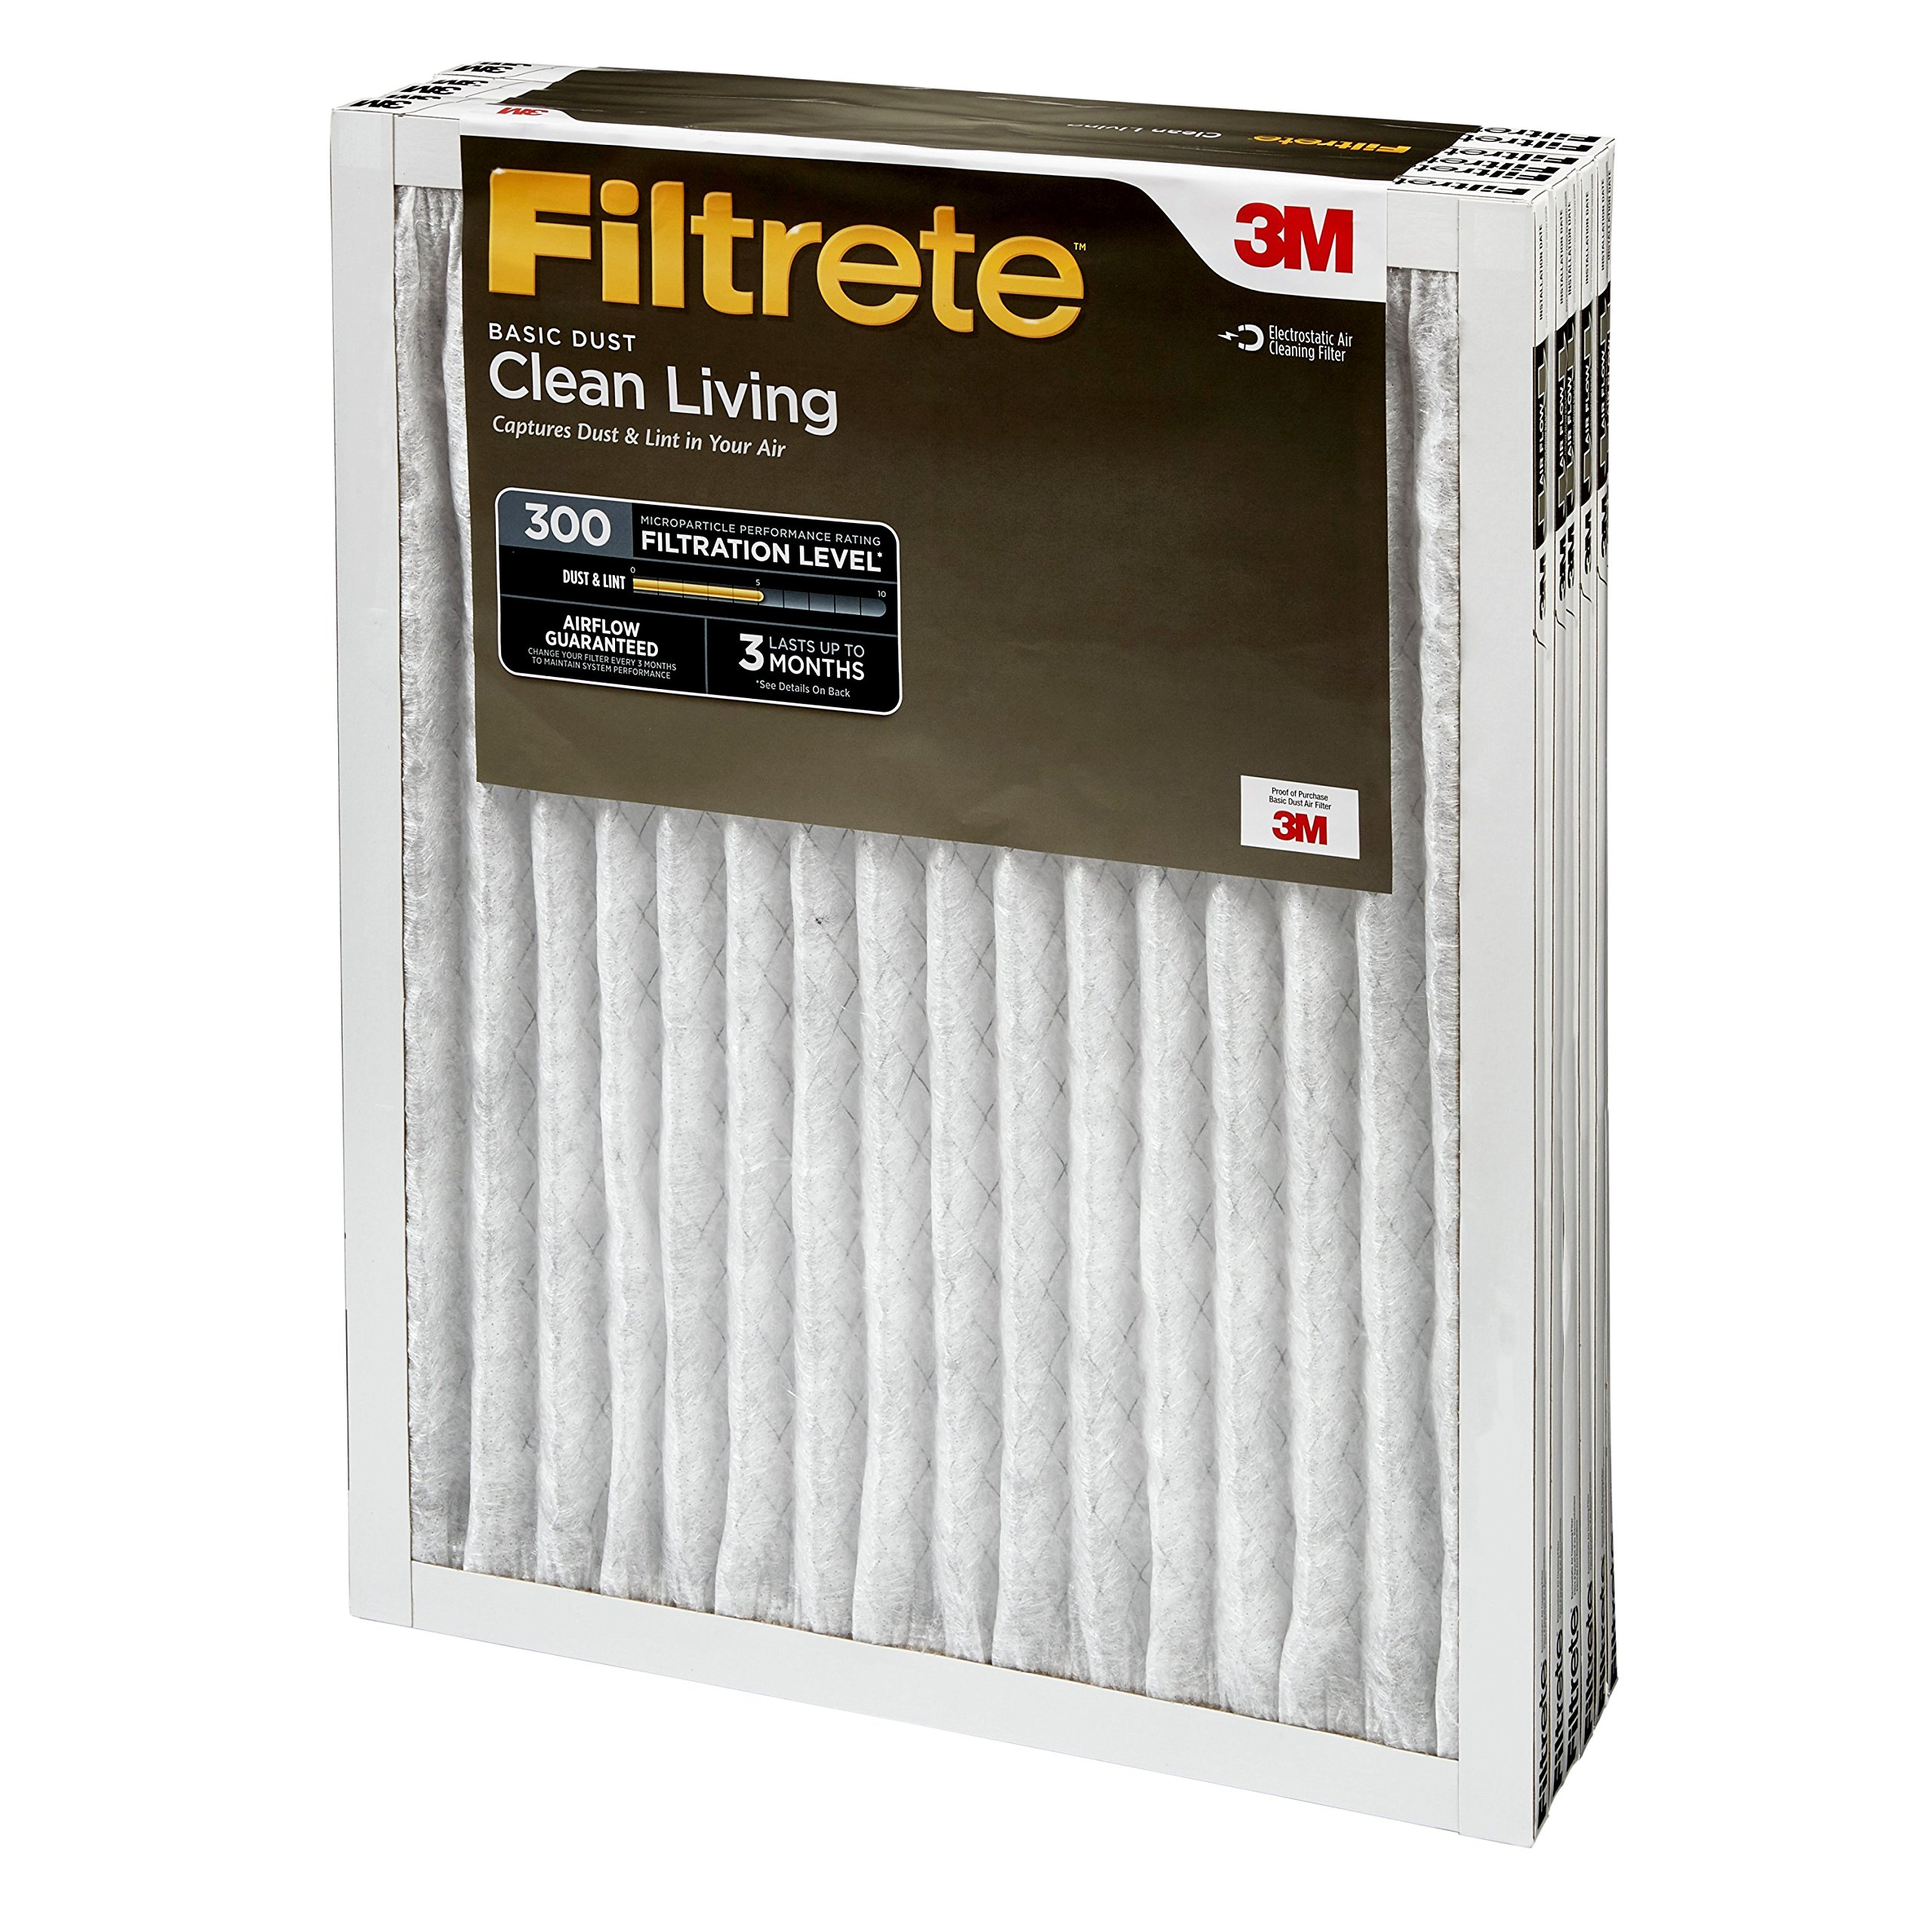 Filtrete 20x20x1, AC Furnace Air Filter, MPR 300, Clean Living Basic Dust, 6-Pack by Filtrete (Image #8)